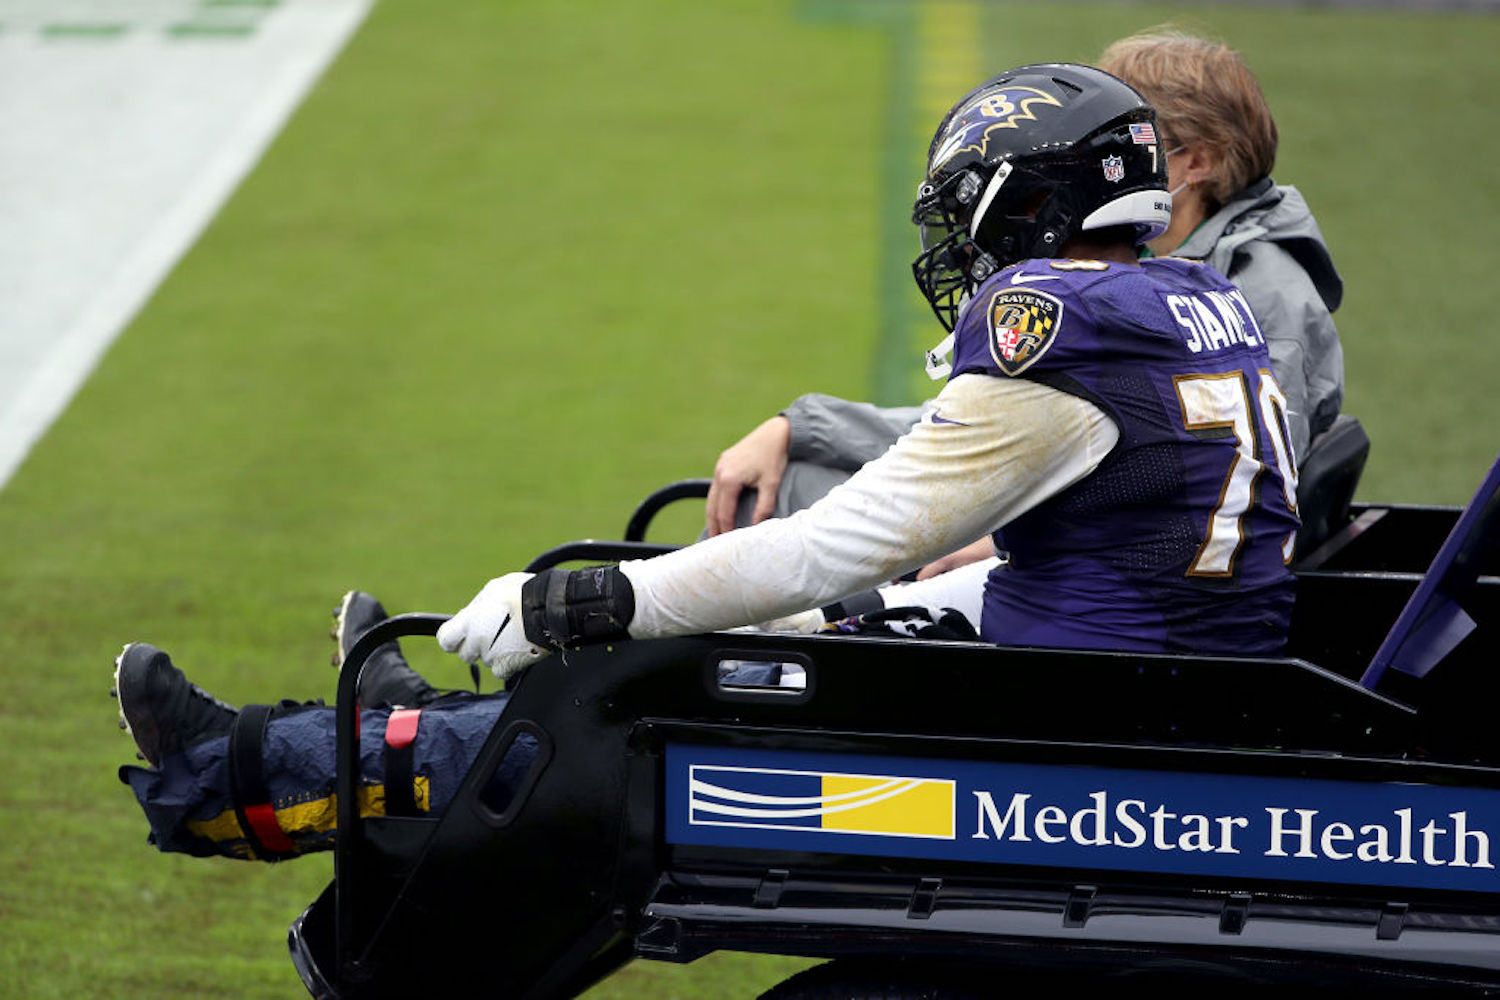 Ronnie Stanley signed a $98.75 million contract extension with the Ravens on Friday and suffered a devastating ankle injury two days later.